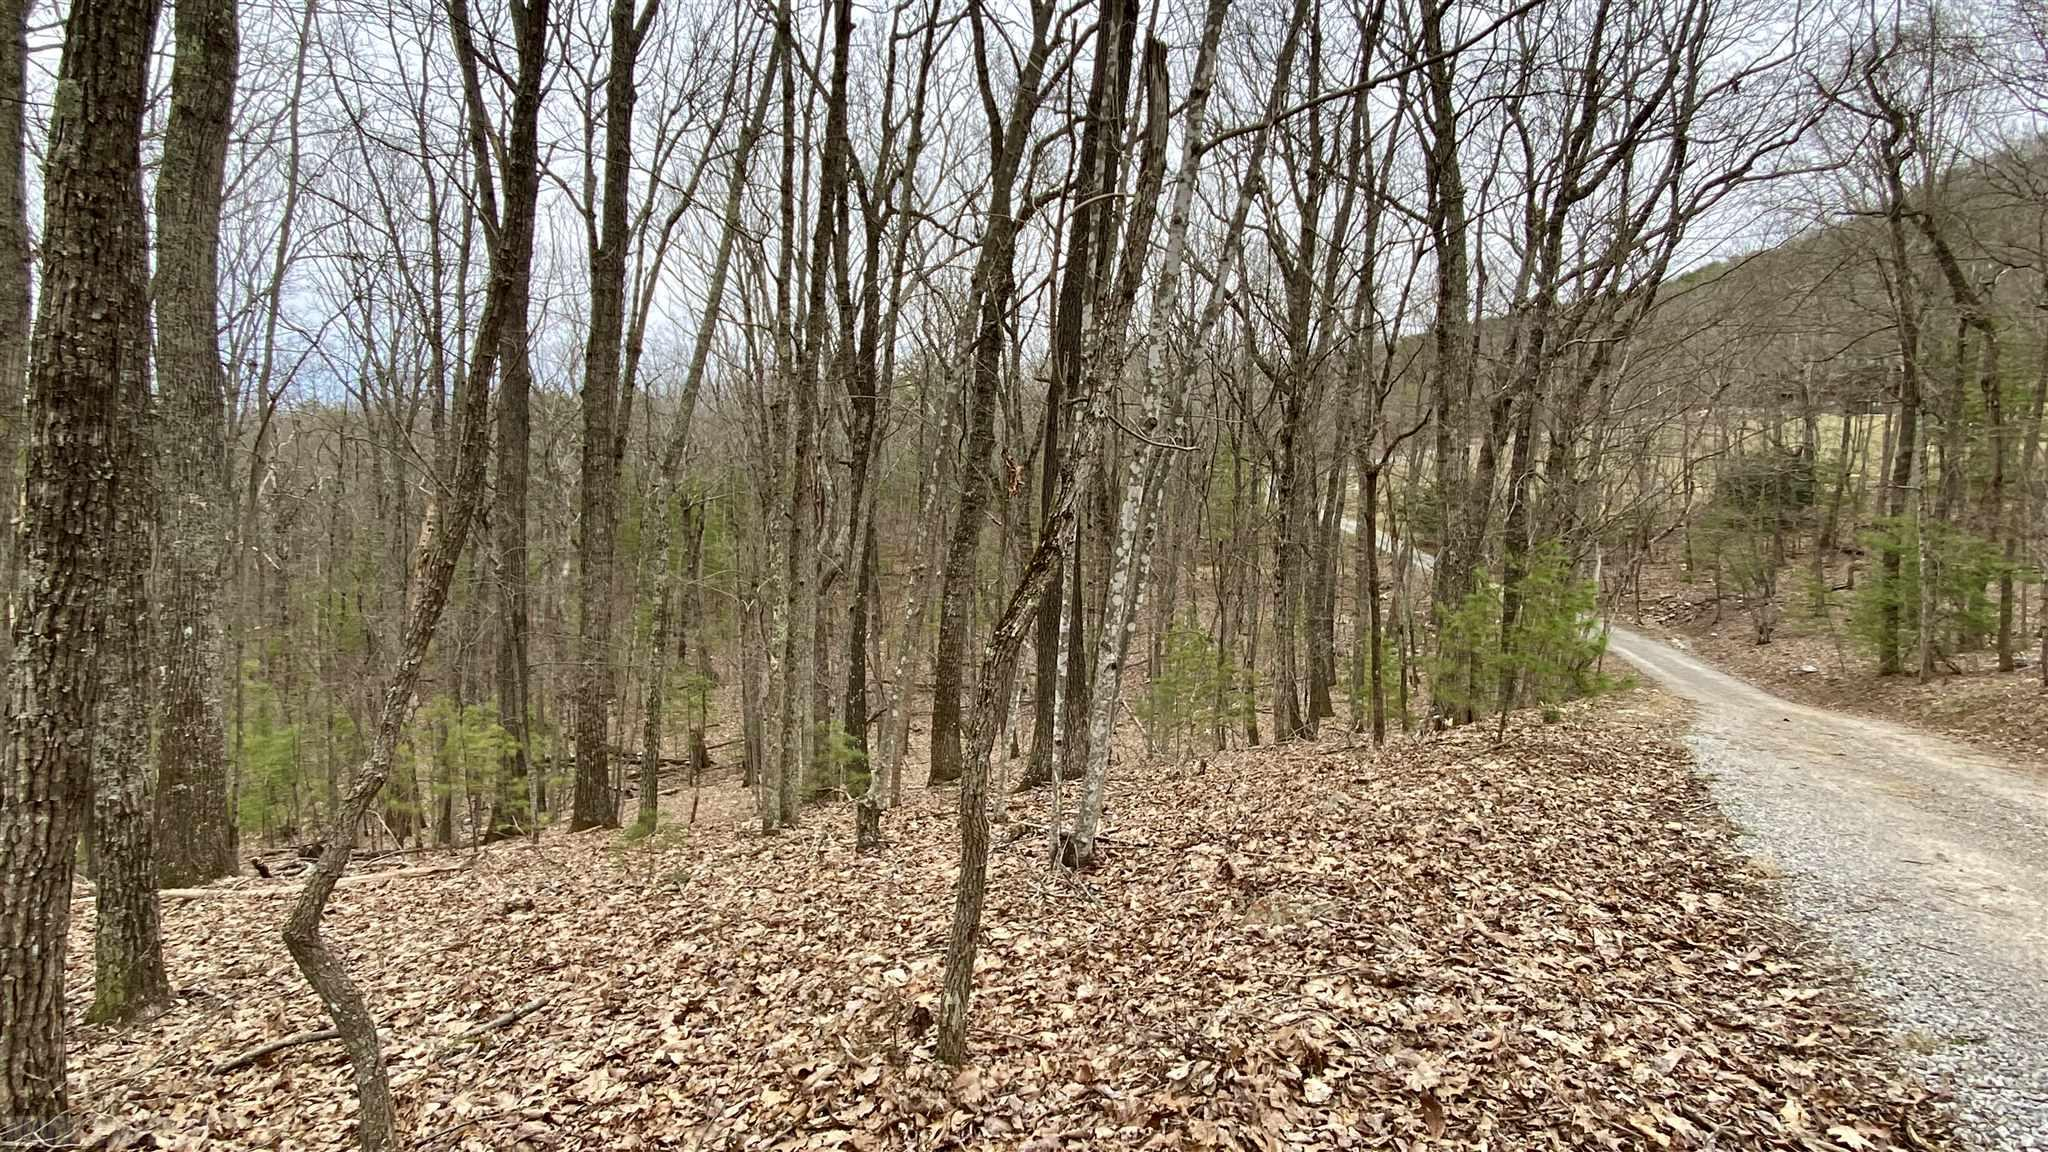 A 10-acre wooded paradise at the end of a private road awaits you and your house plans. Live in the serenity of the mountains while being within 8-10 minutes of Wytheville and Fort Chiswell. If you are looking for remoteness with convenience to amenities this property could be the fit you are looking for. Perfect tract for that log cabin you've always wanted to build. Plenty of room to hike, ride, and explore. Check out the photos and schedule your appointment today.